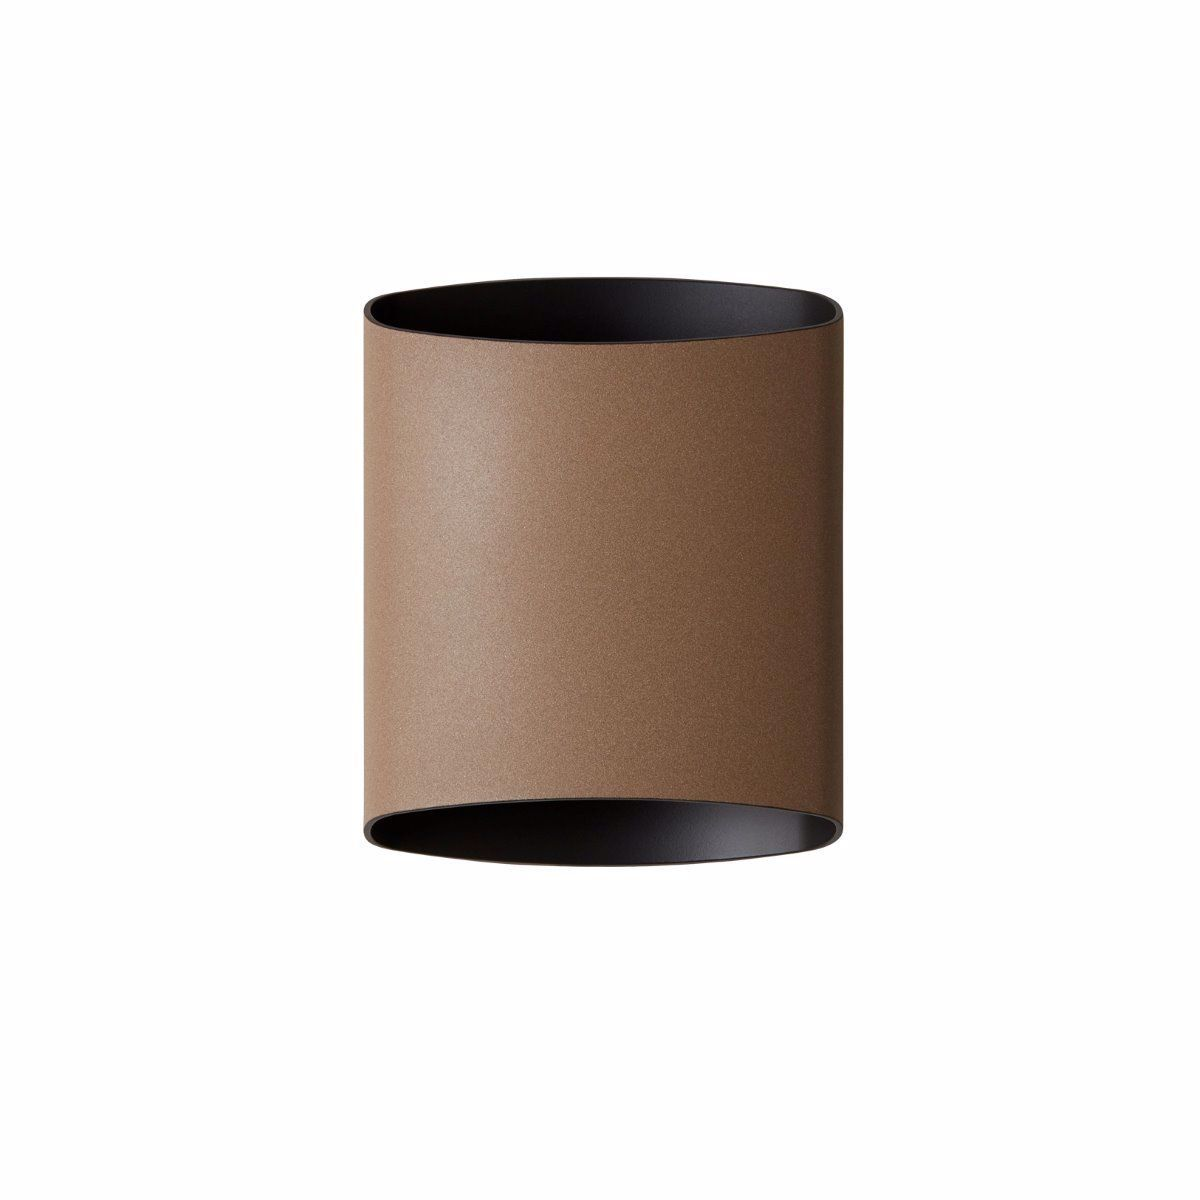 Applique Murale Bois In 2020 Brown Cabinets Lamp Led